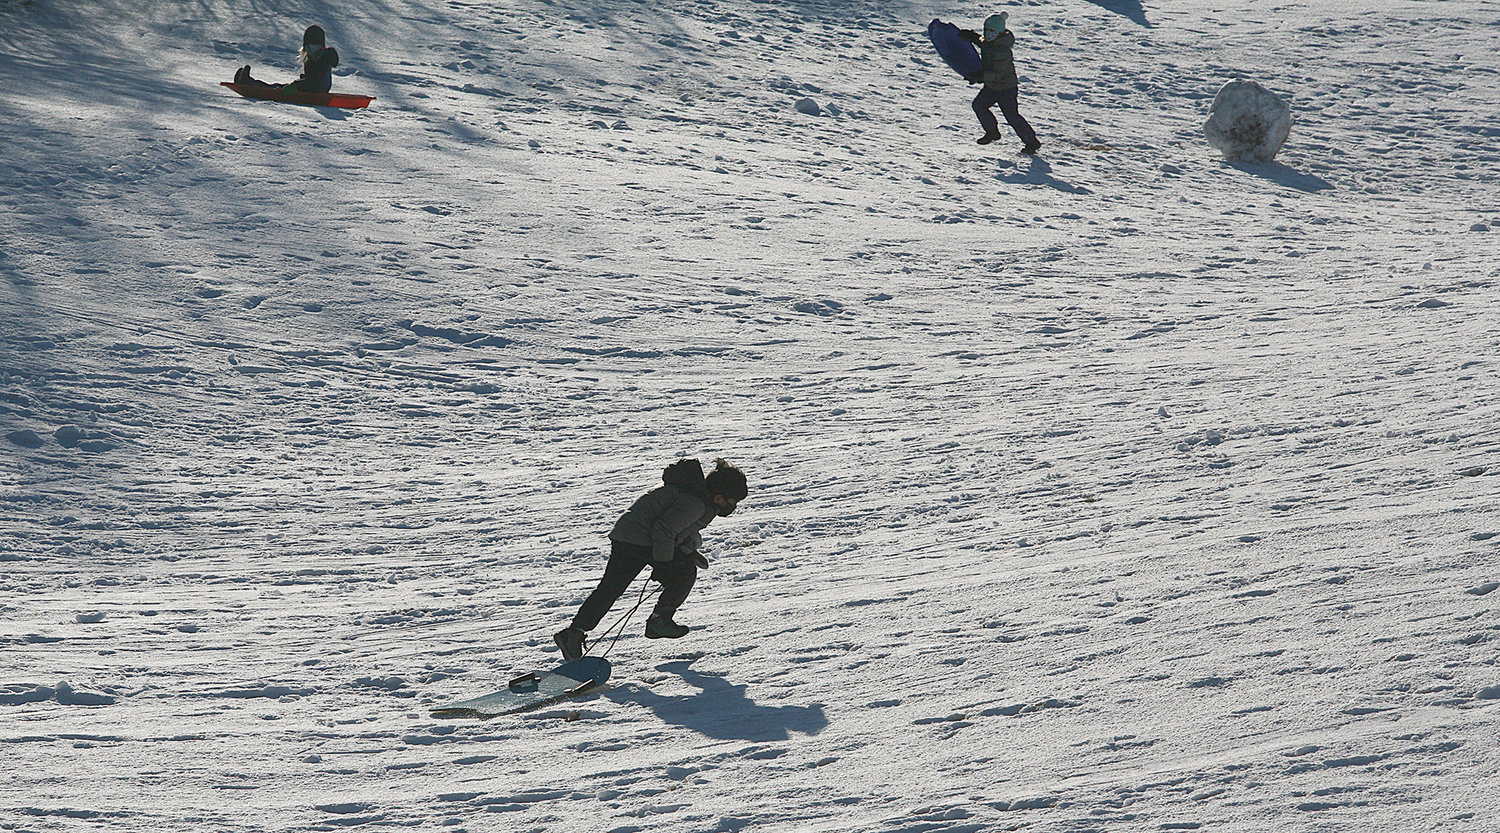 MONDAY, FEBRUARY 8, 2021 -- Sledding off Quaker Road on Monday following Sunday's snow storm. Photo by Ray K. Saunders